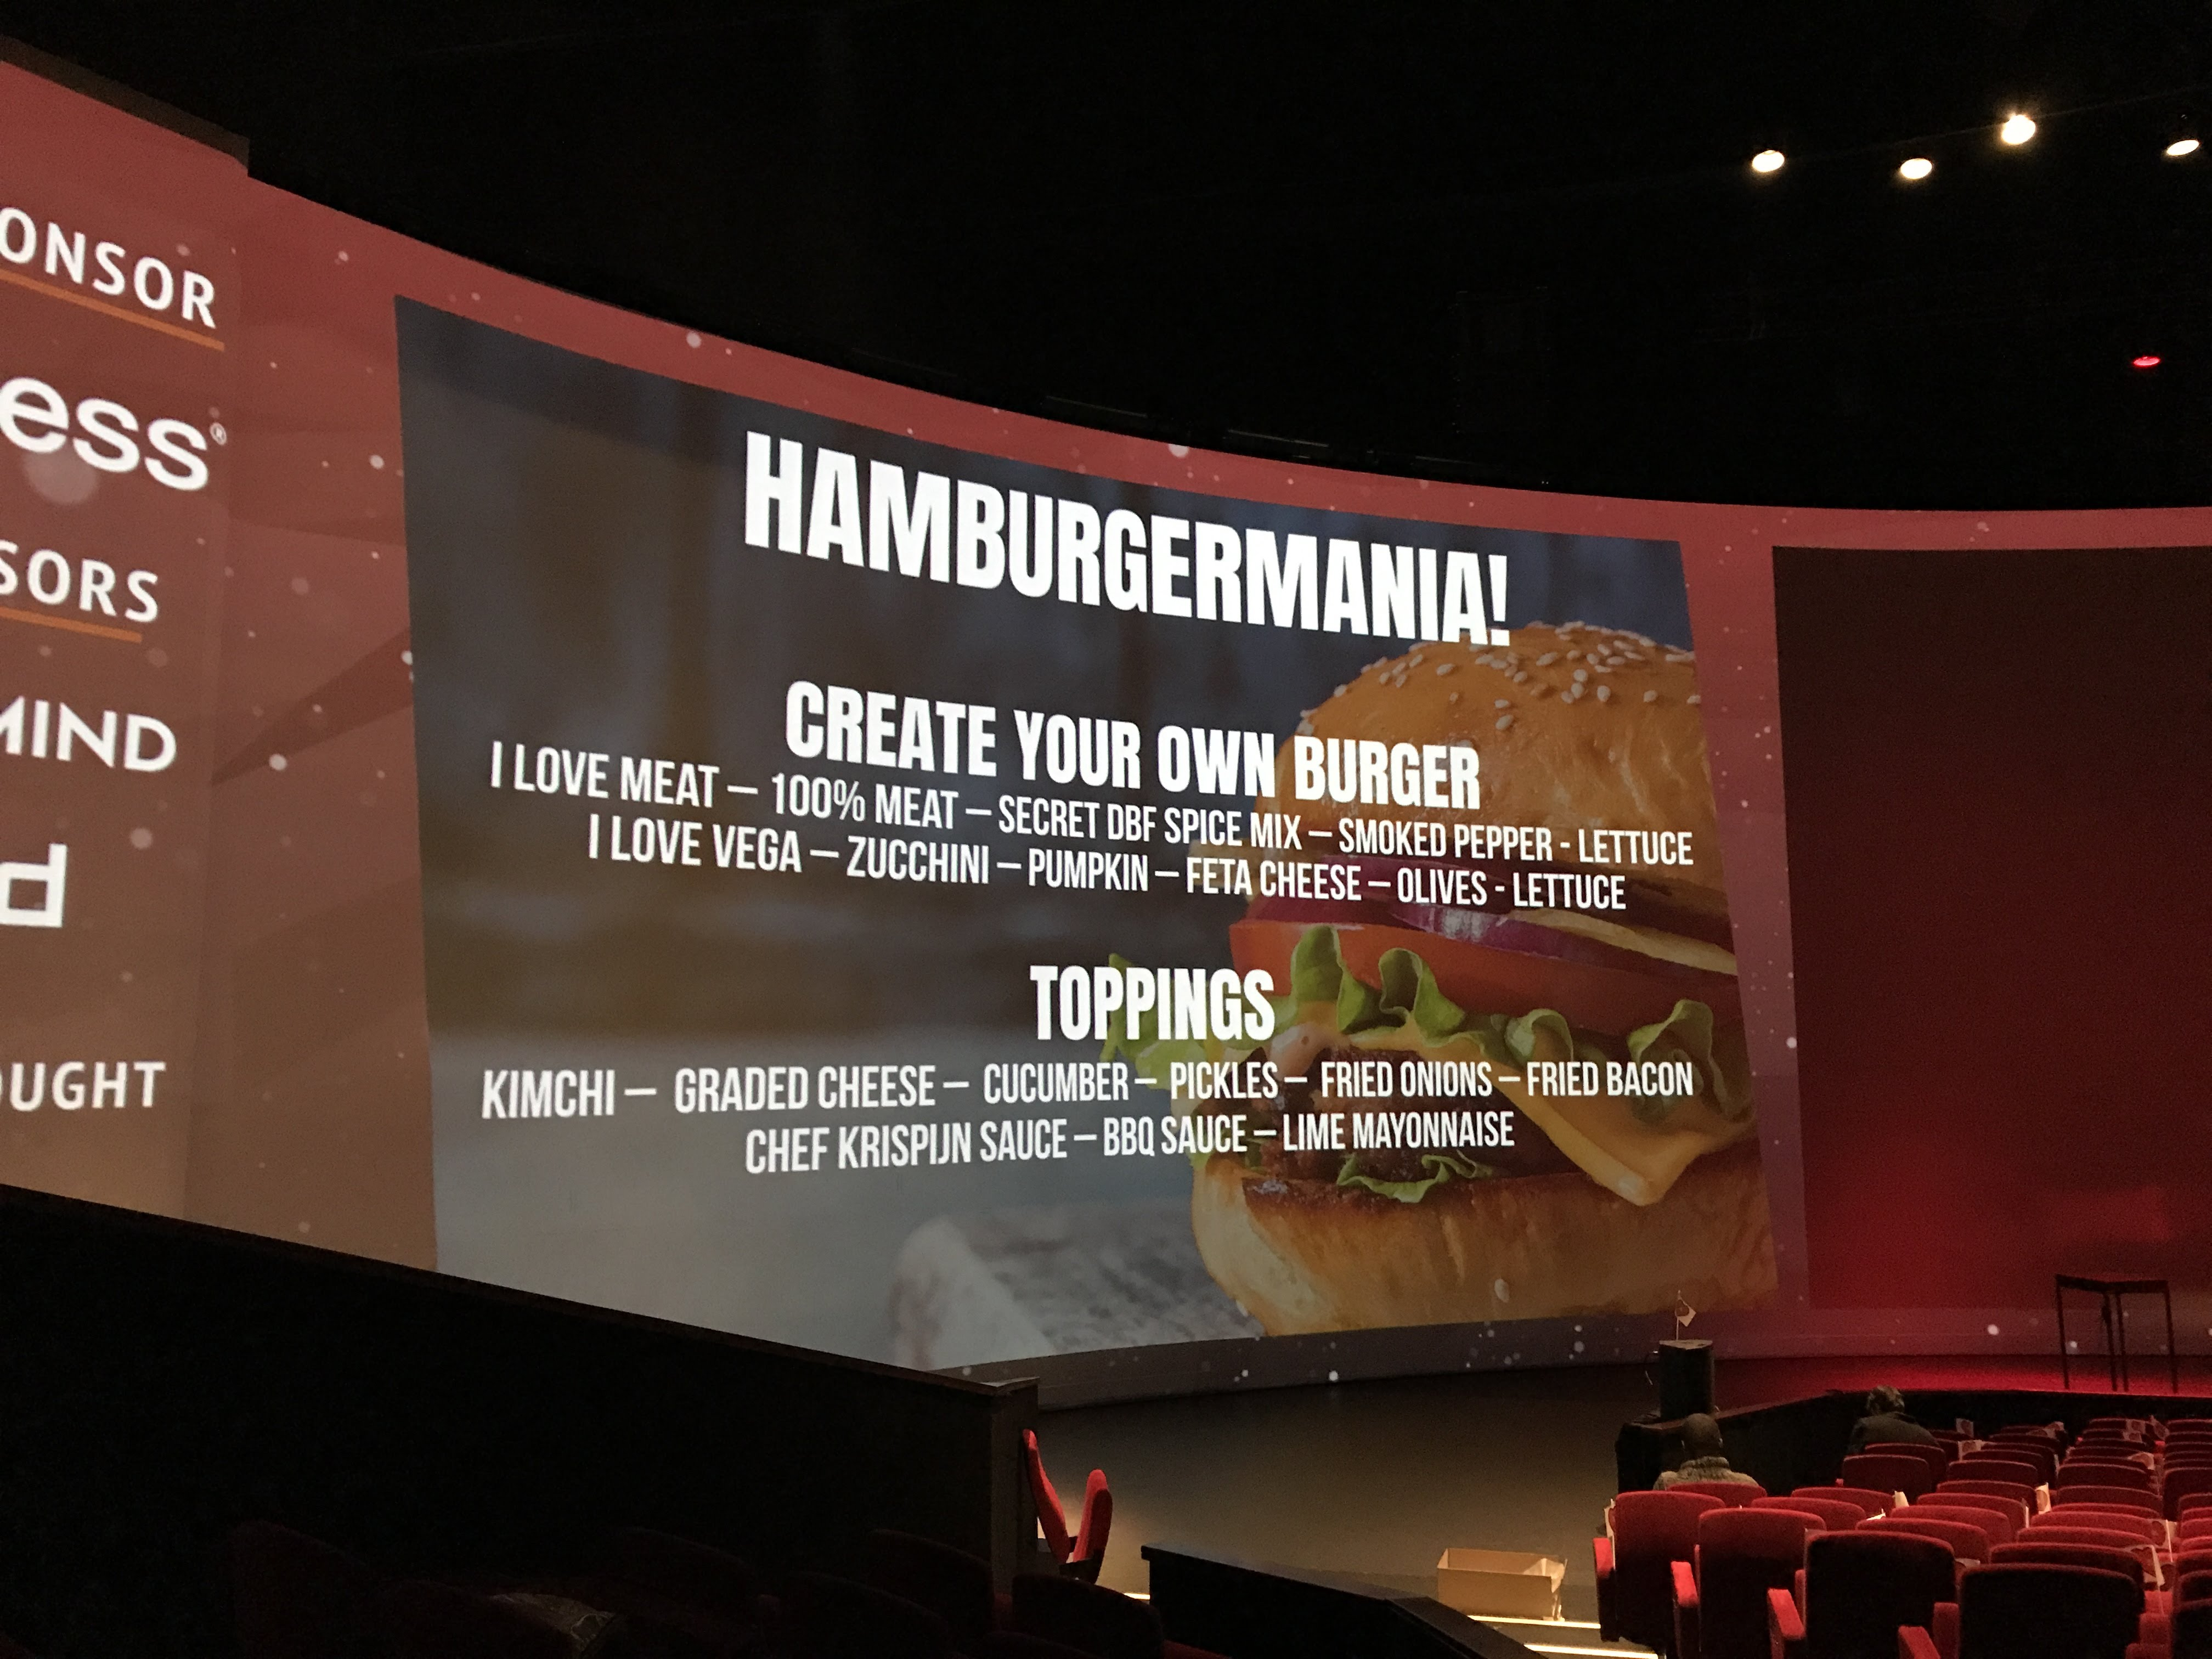 HAMBURGERMANIA!